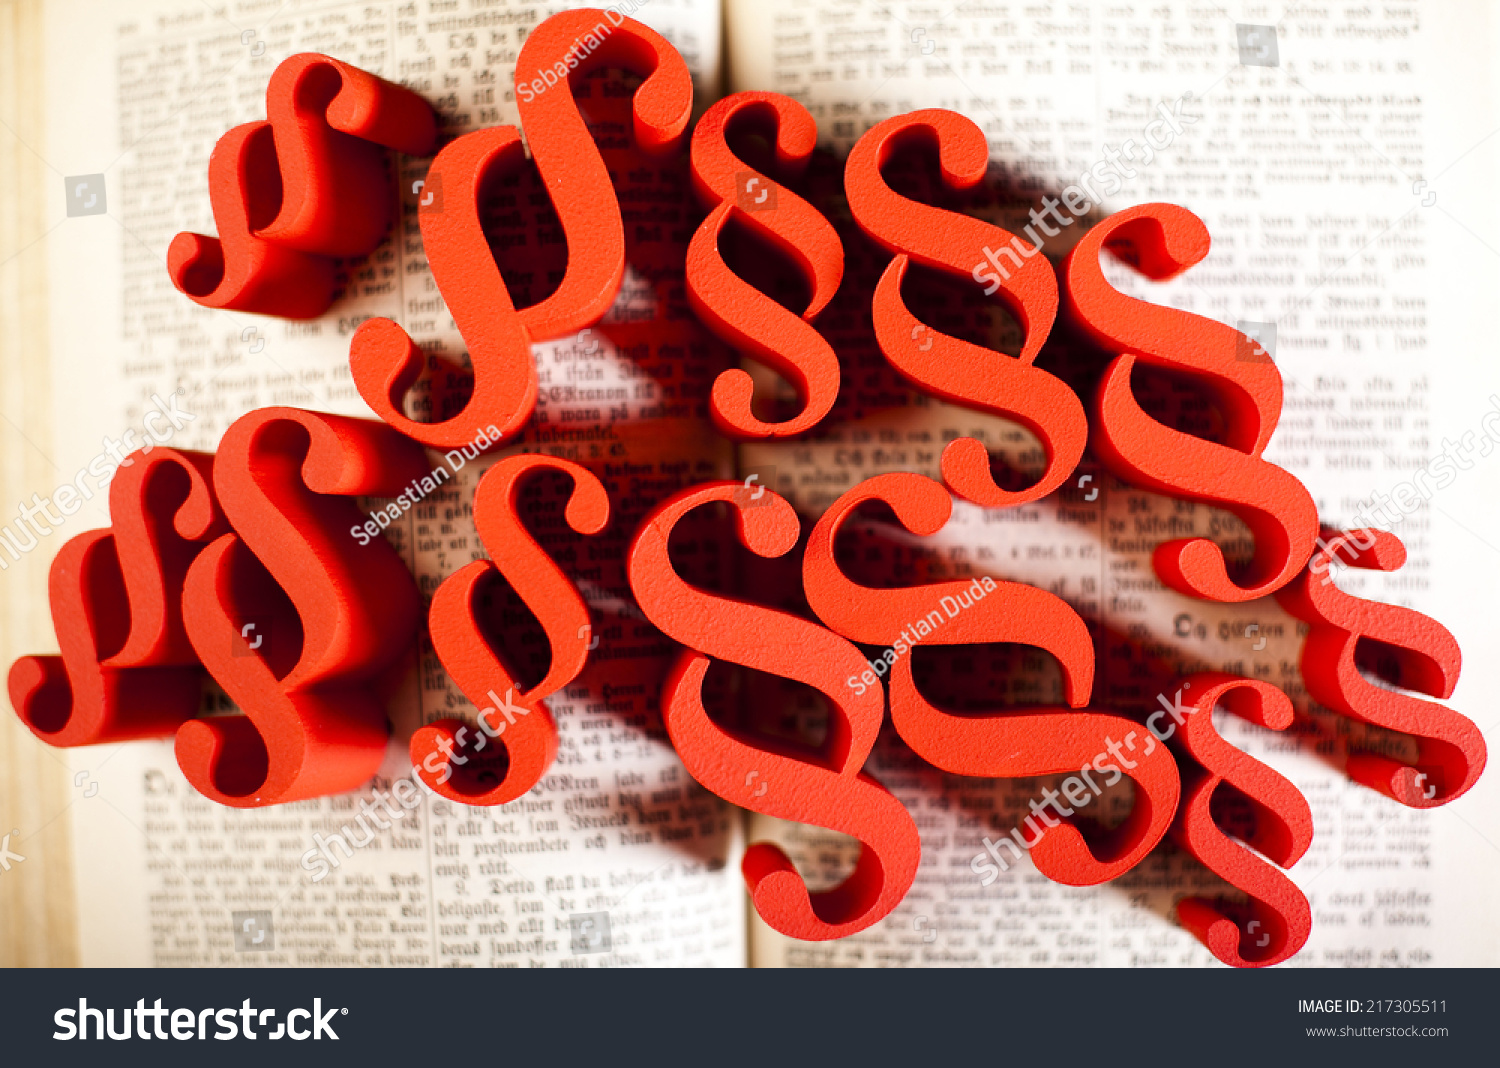 Paragraph sign symbol stock photo 217305511 shutterstock paragraph sign symbol buycottarizona Gallery